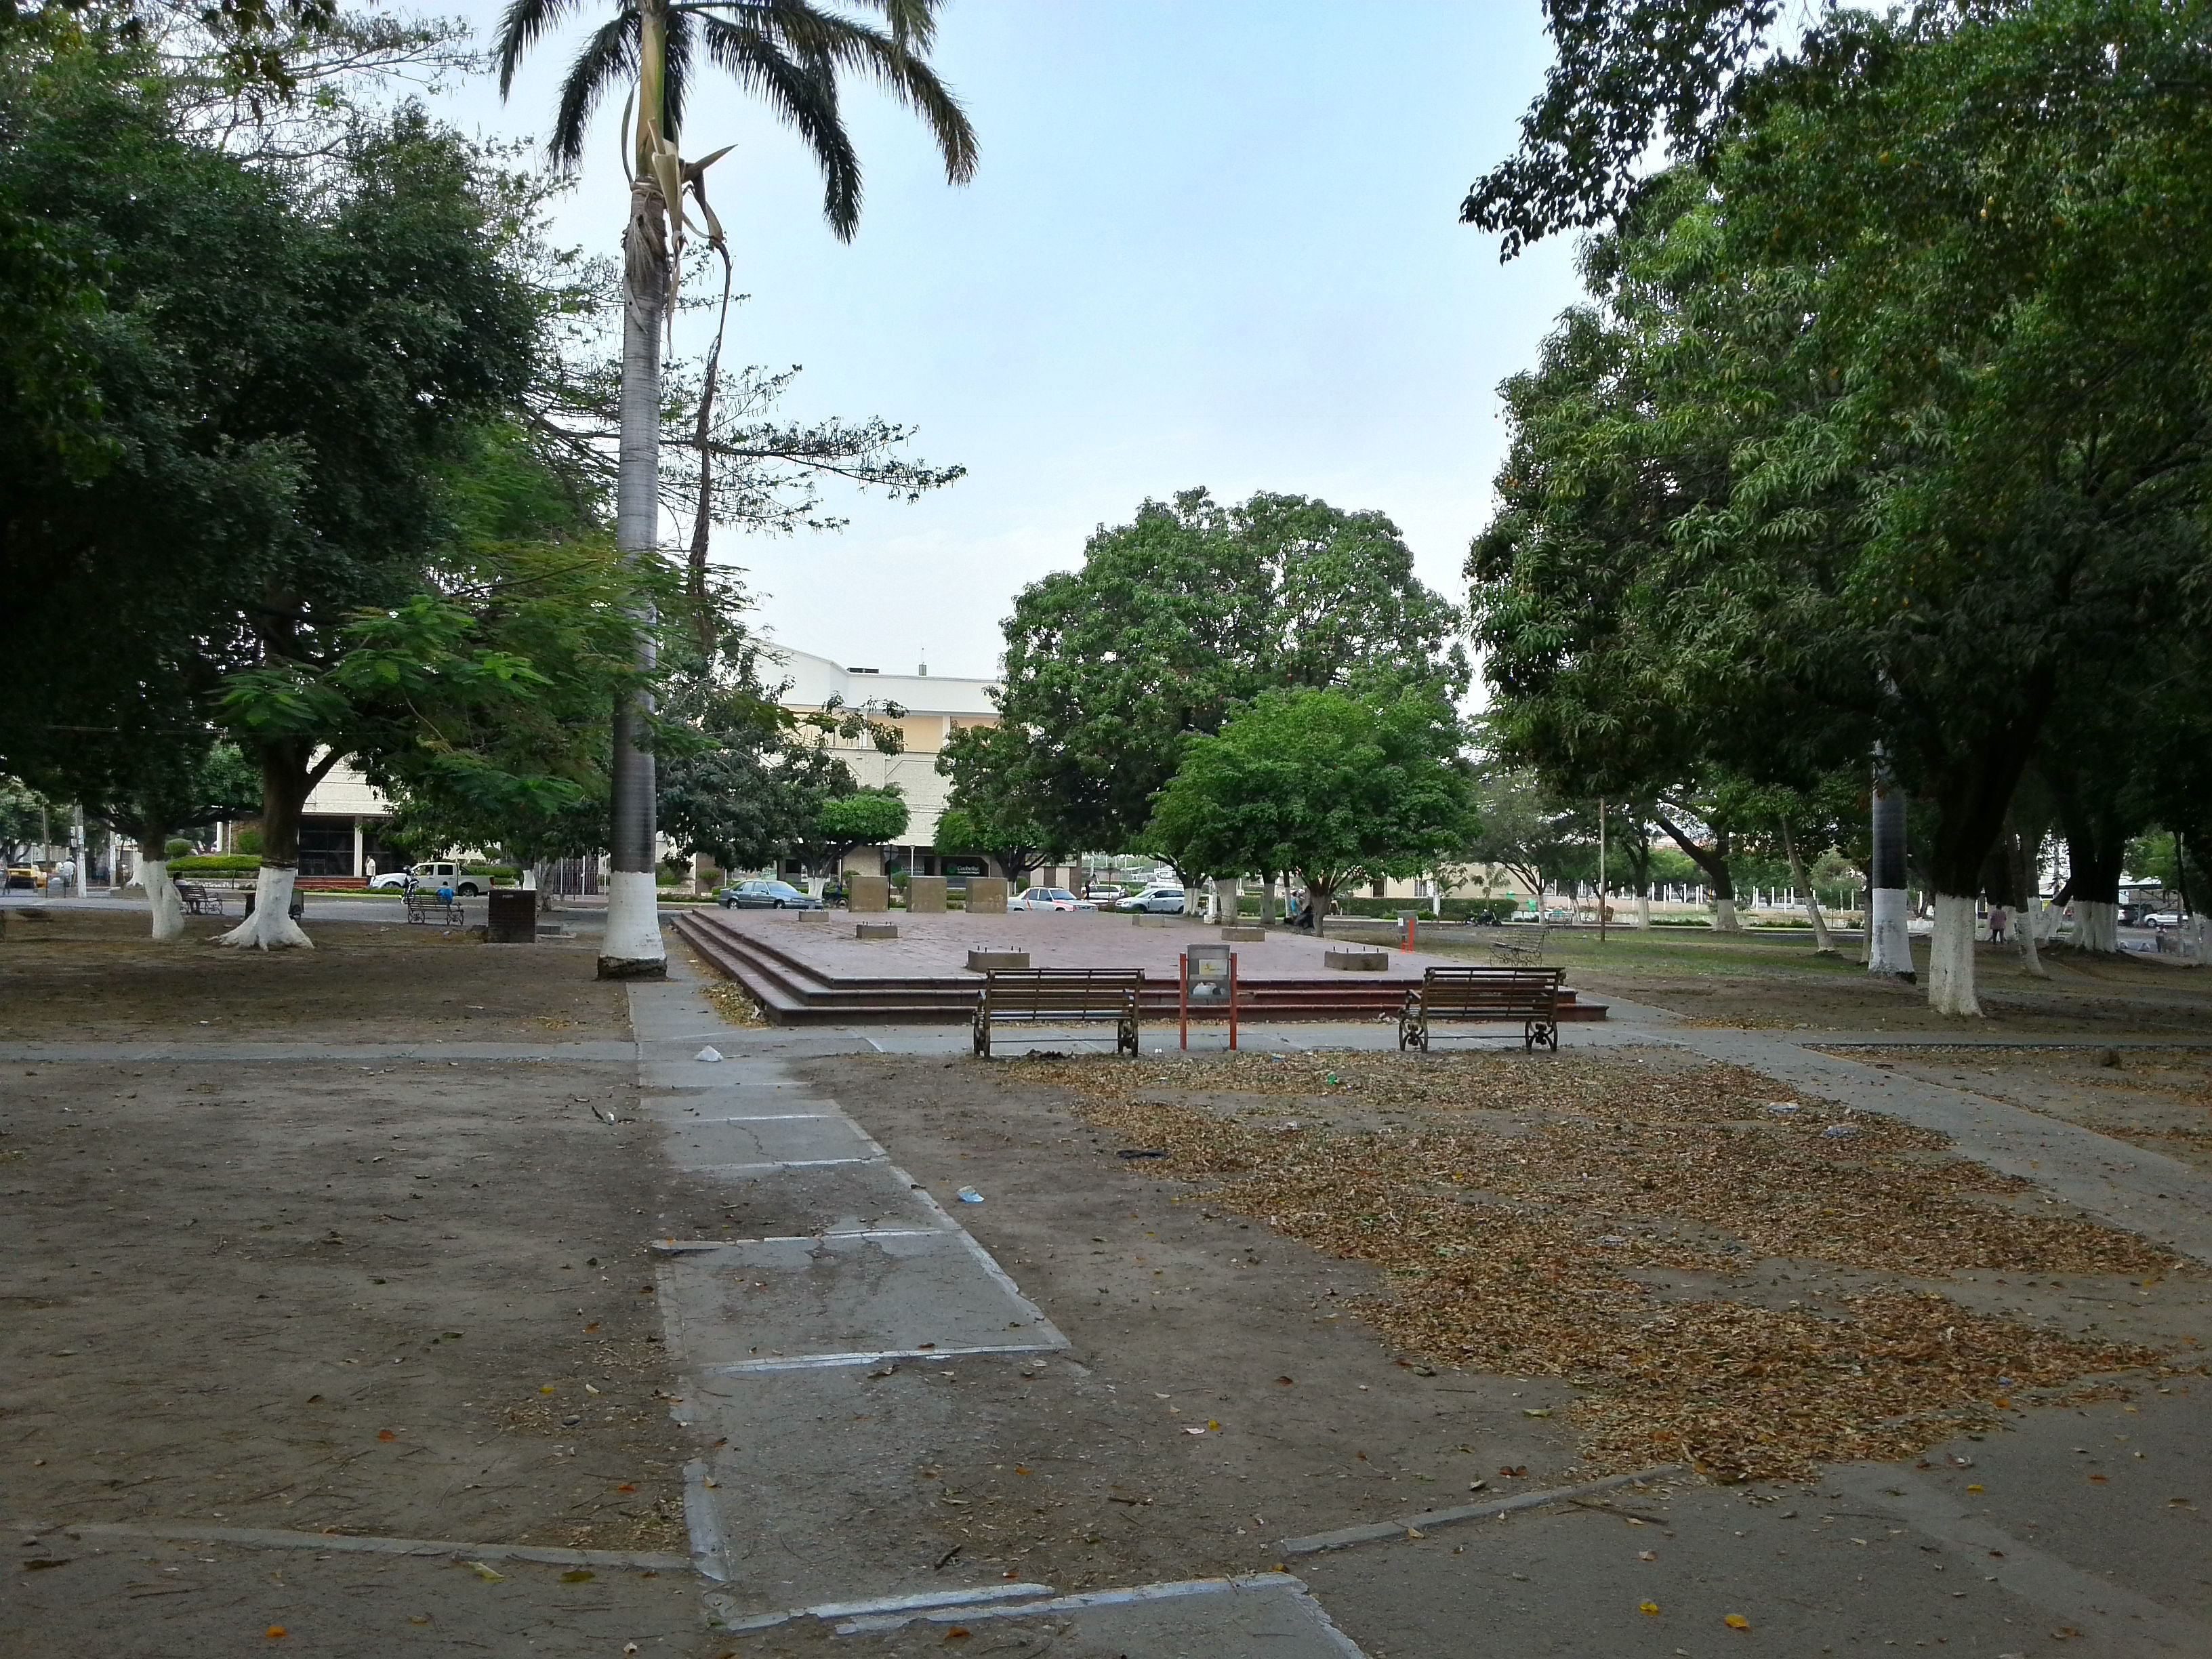 Urban Area in Parque La Biblia